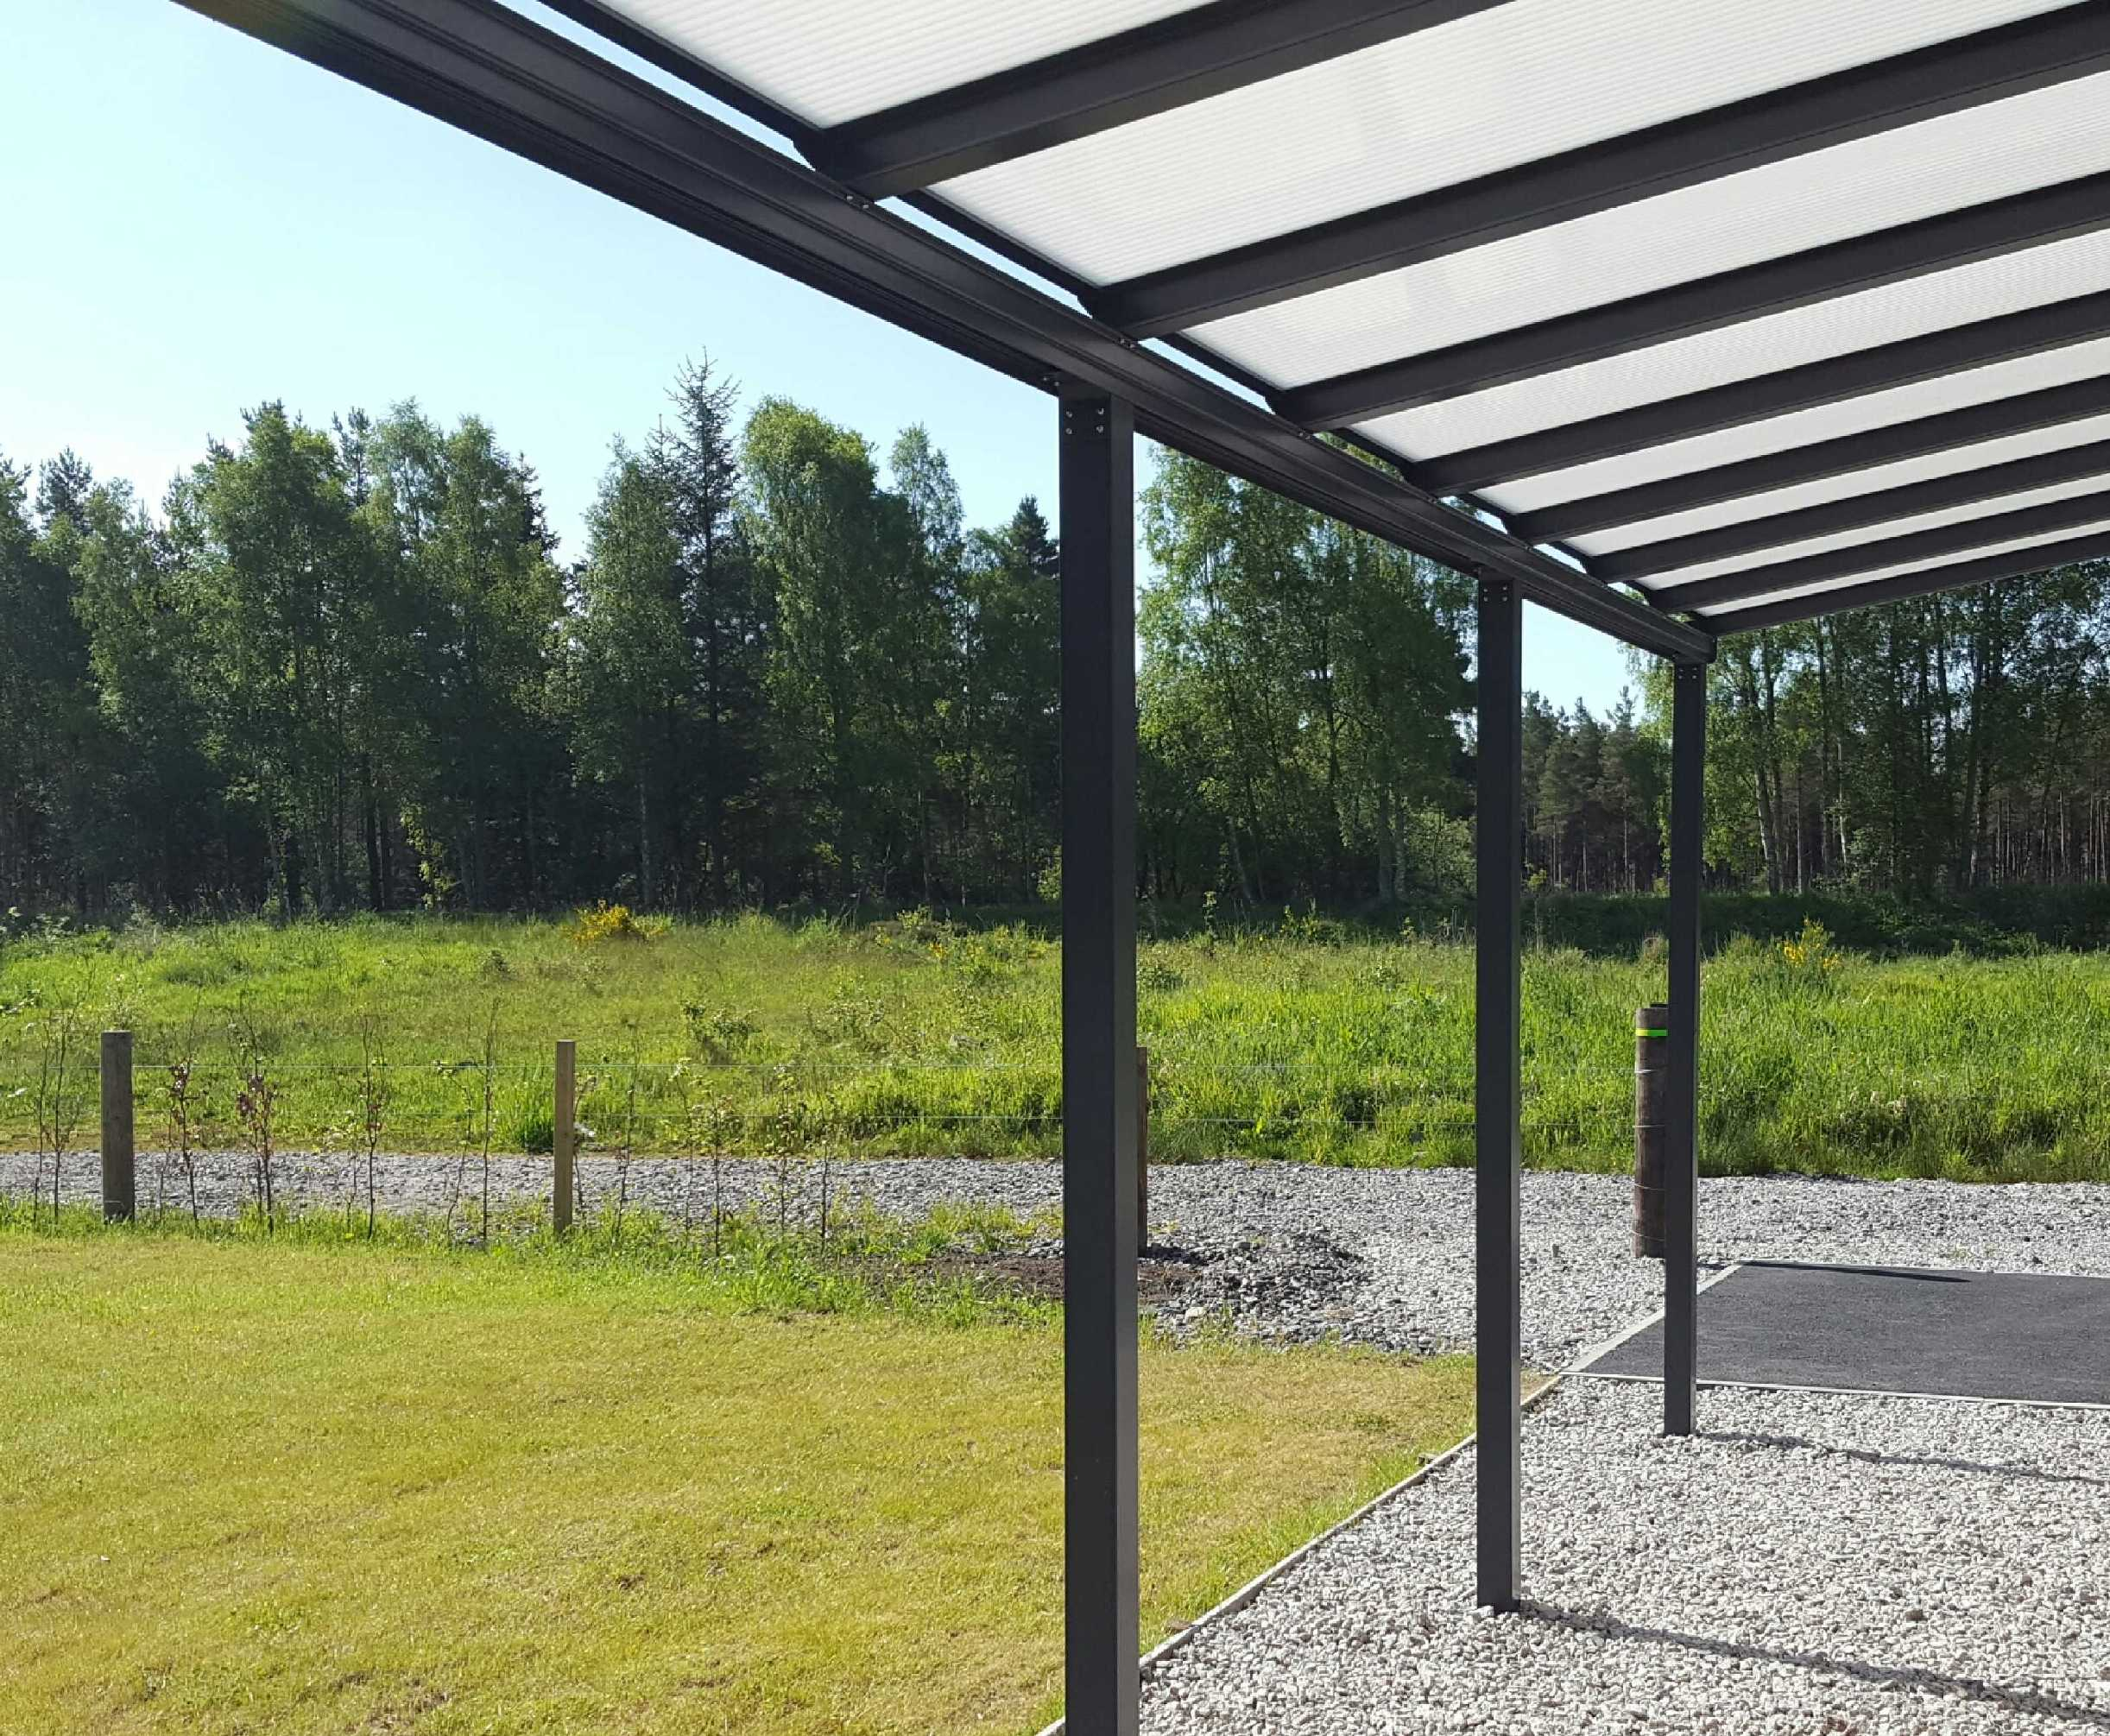 Omega Smart Lean-To Canopy, Anthracite Grey, UNGLAZED for 6mm Glazing - 7.0m (W) x 2.0m (P), (4) Supporting Posts